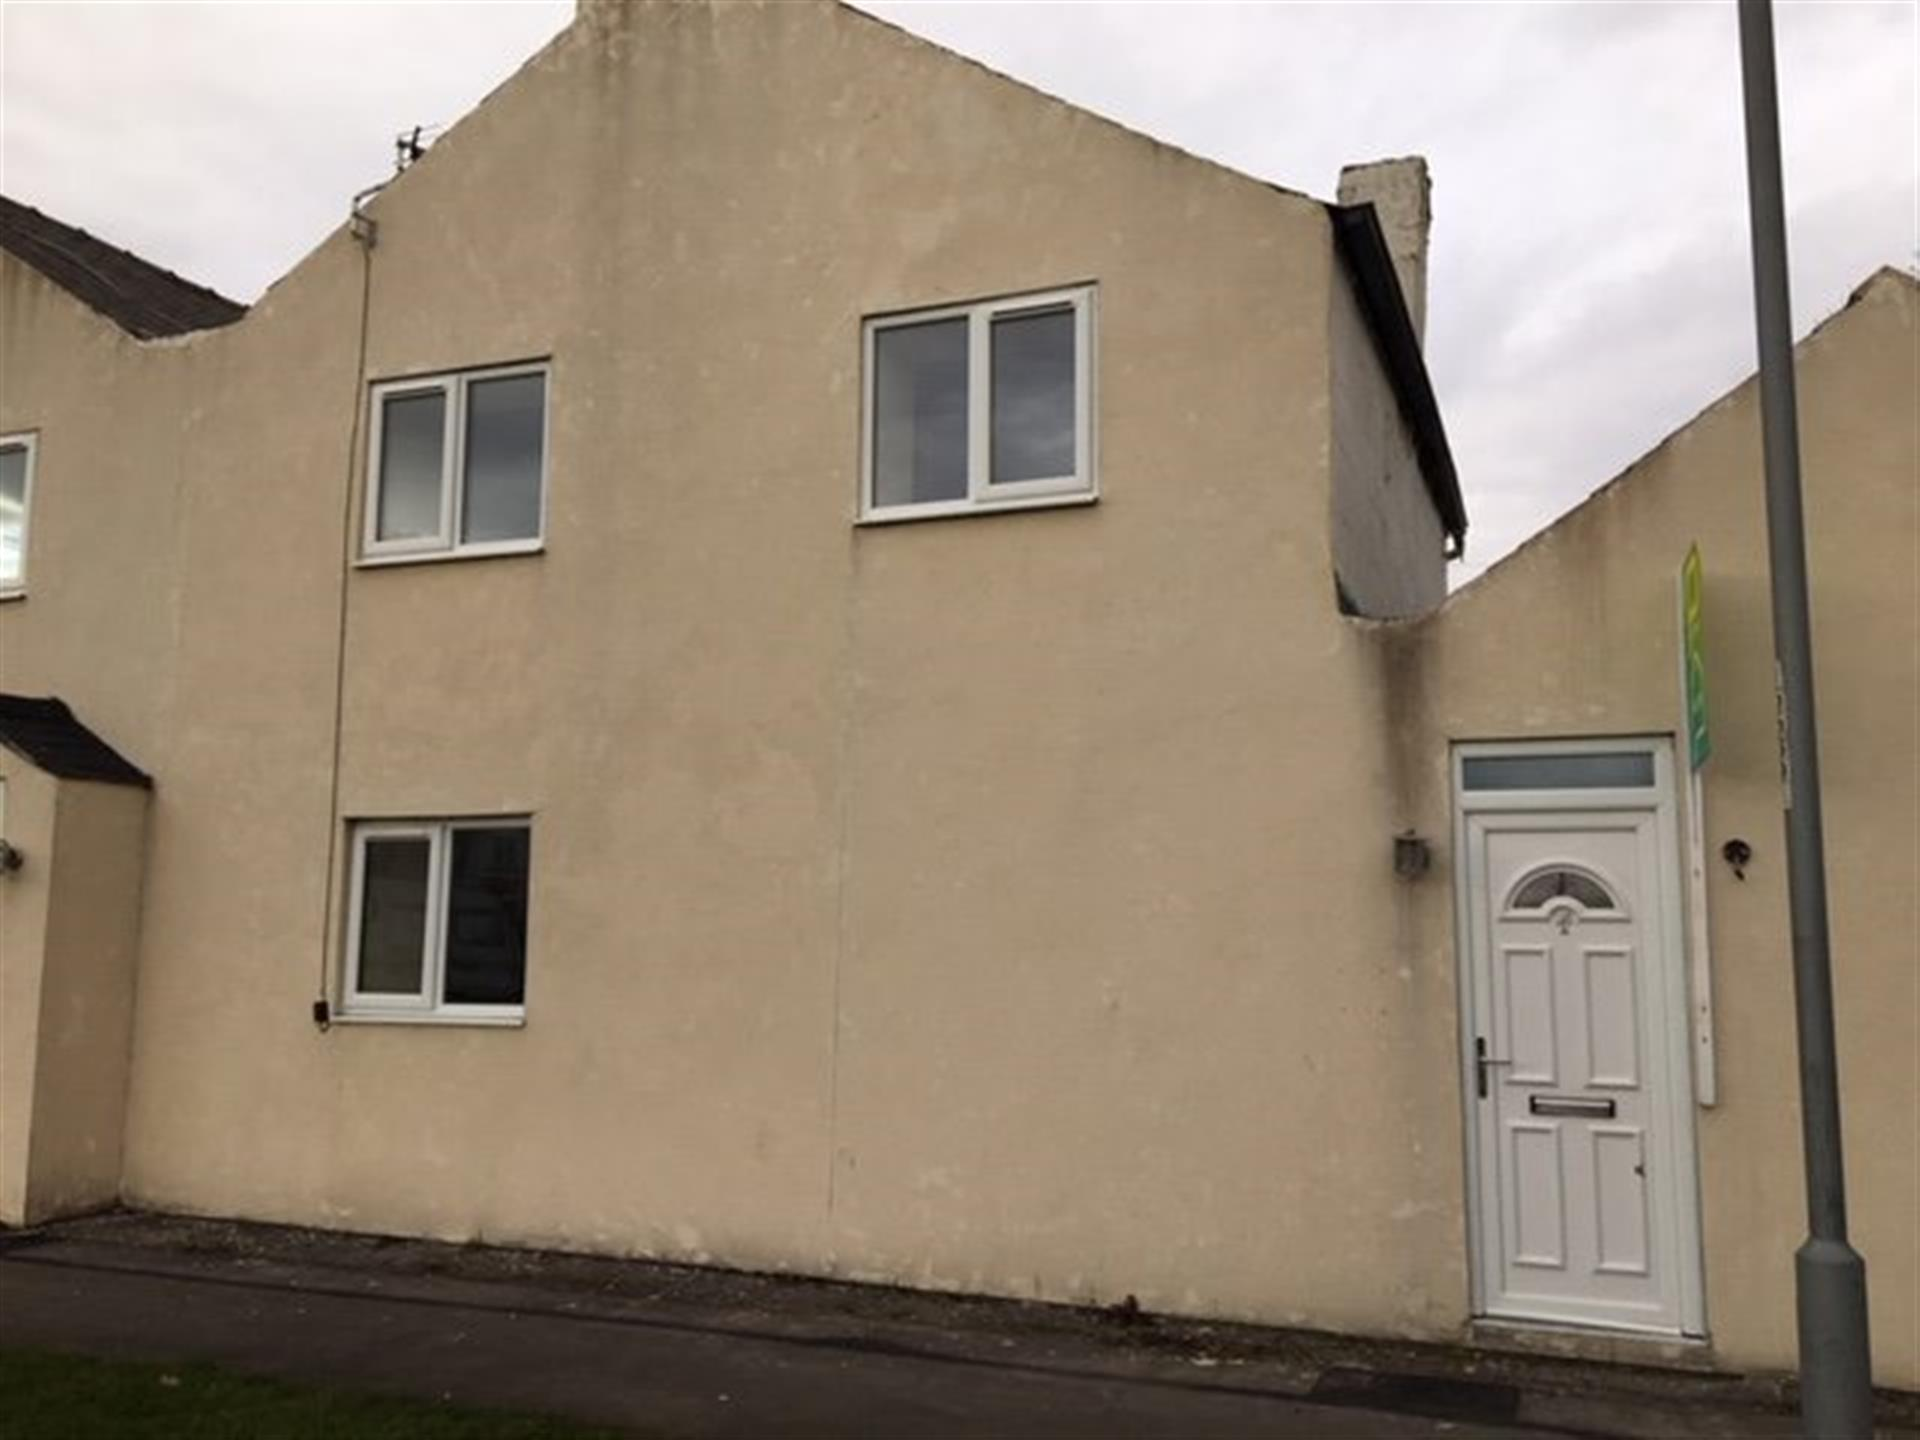 2 bedroom terraced house To Let in West Auckland - photograph 7.